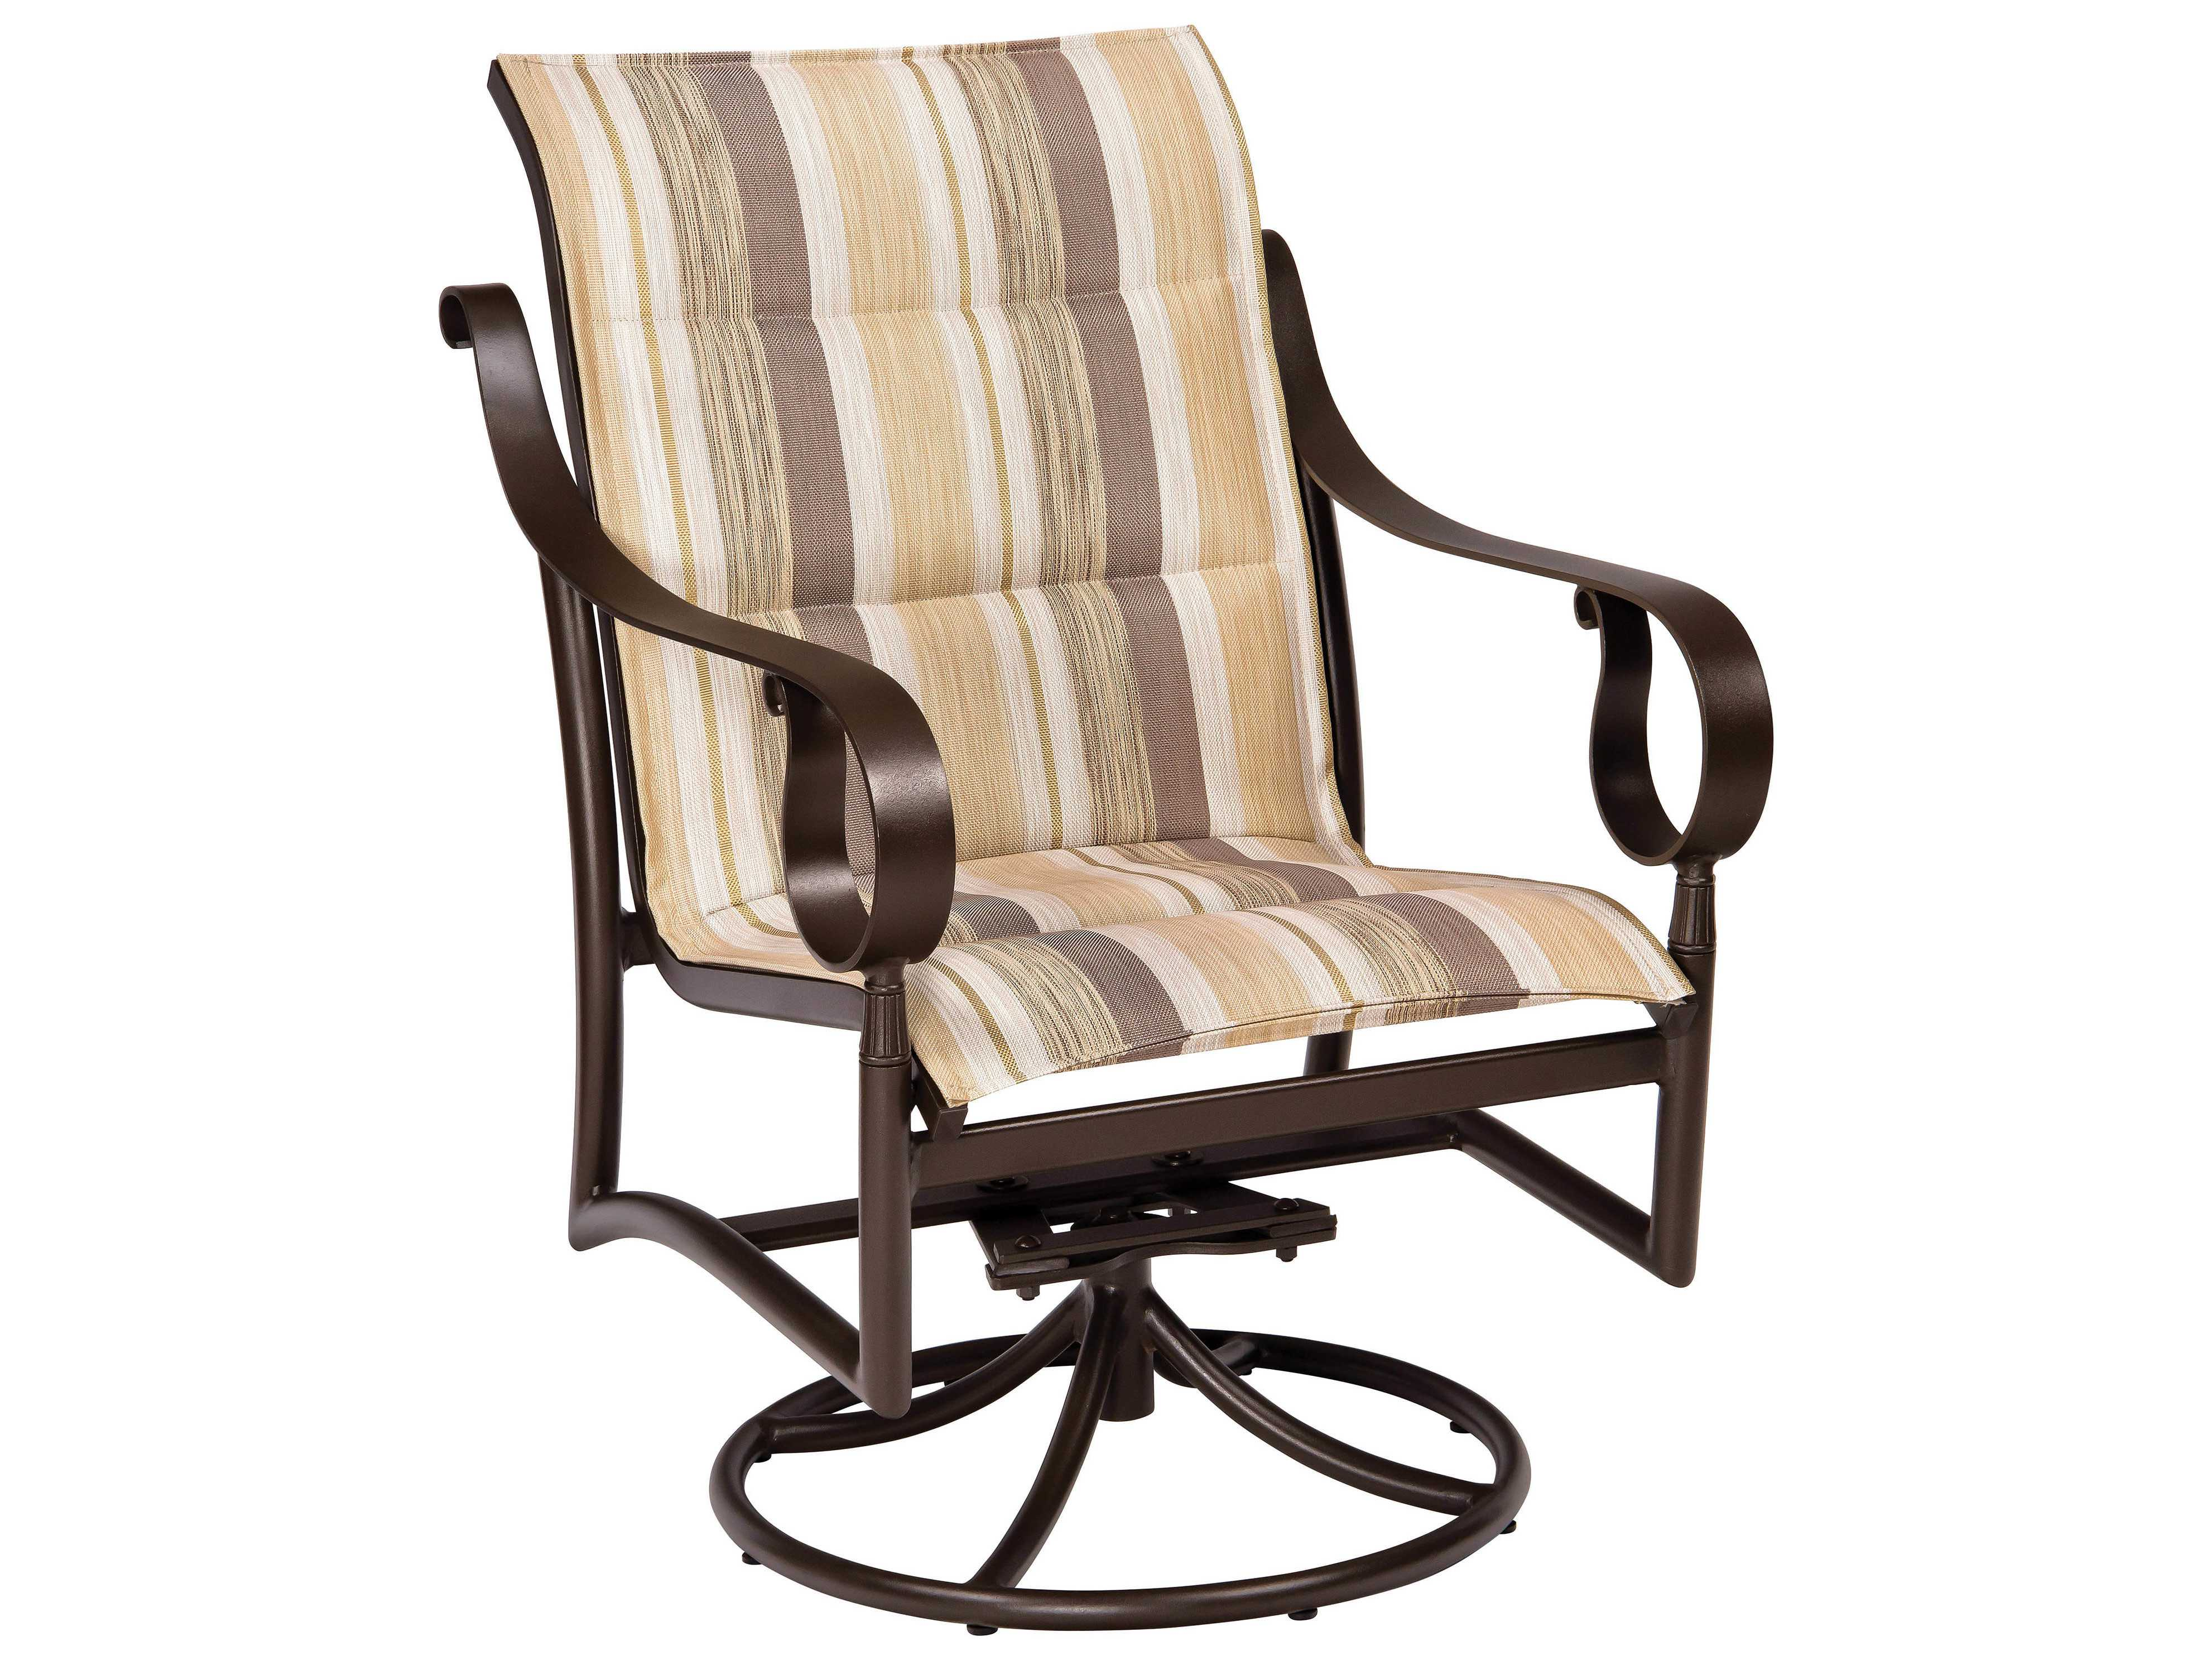 Sling Chairs Woodard Ridgecrest Padded Sling Aluminum Low Back Swivel